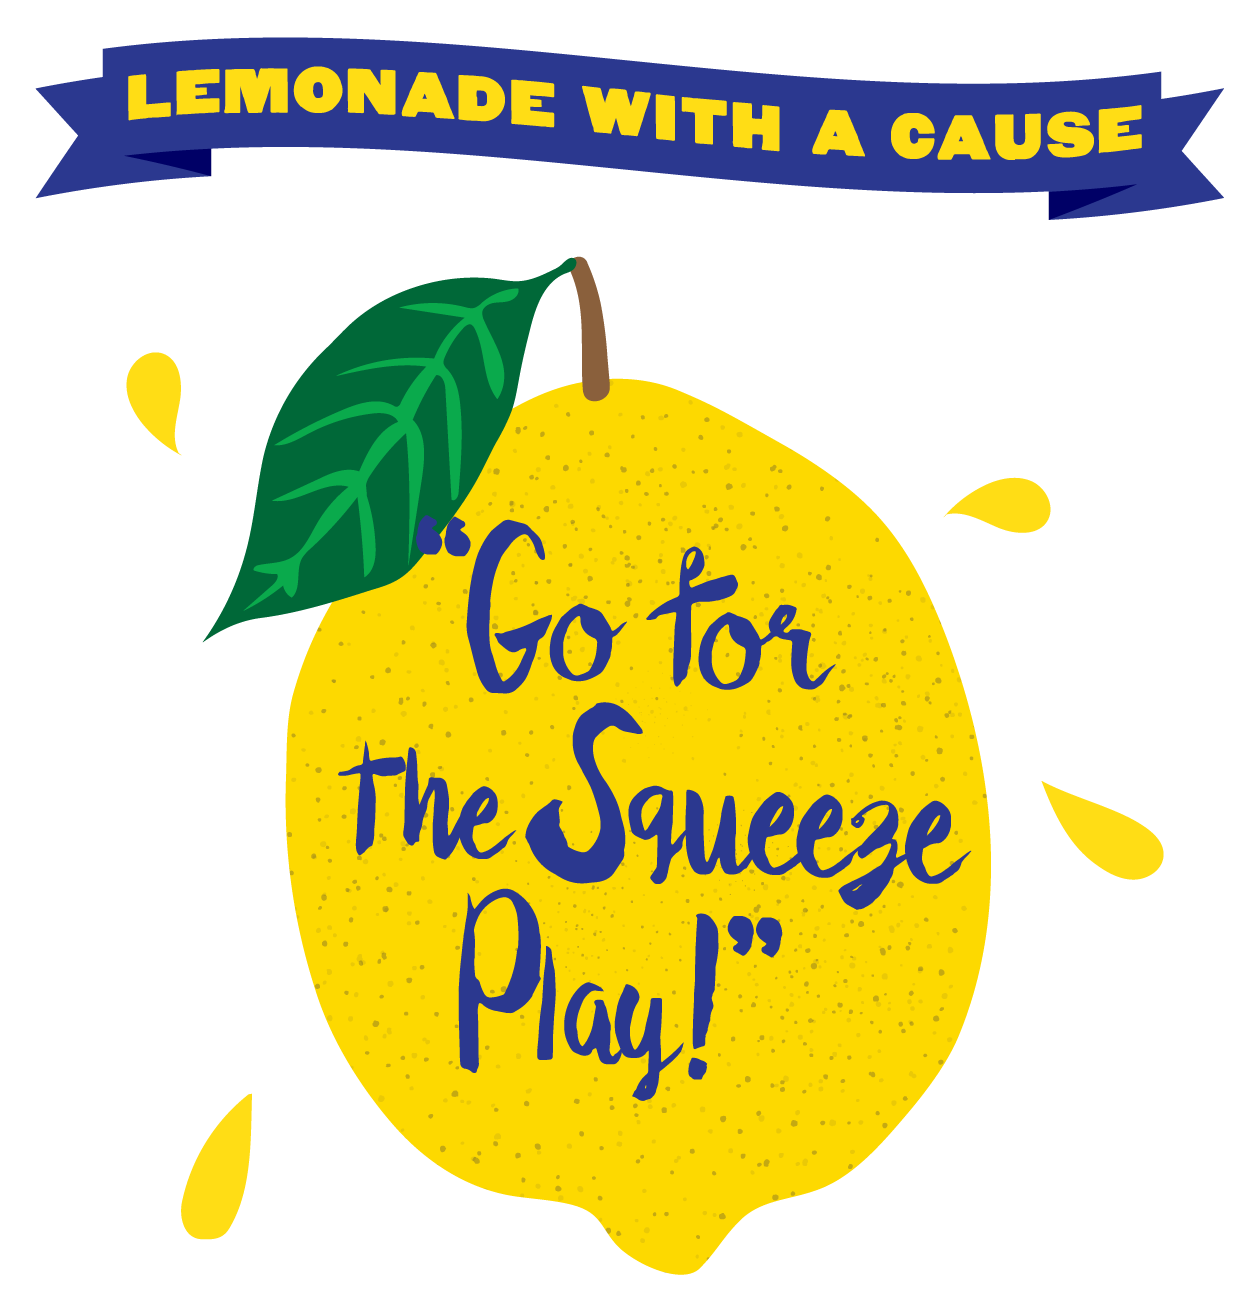 Go for the squeeze play!